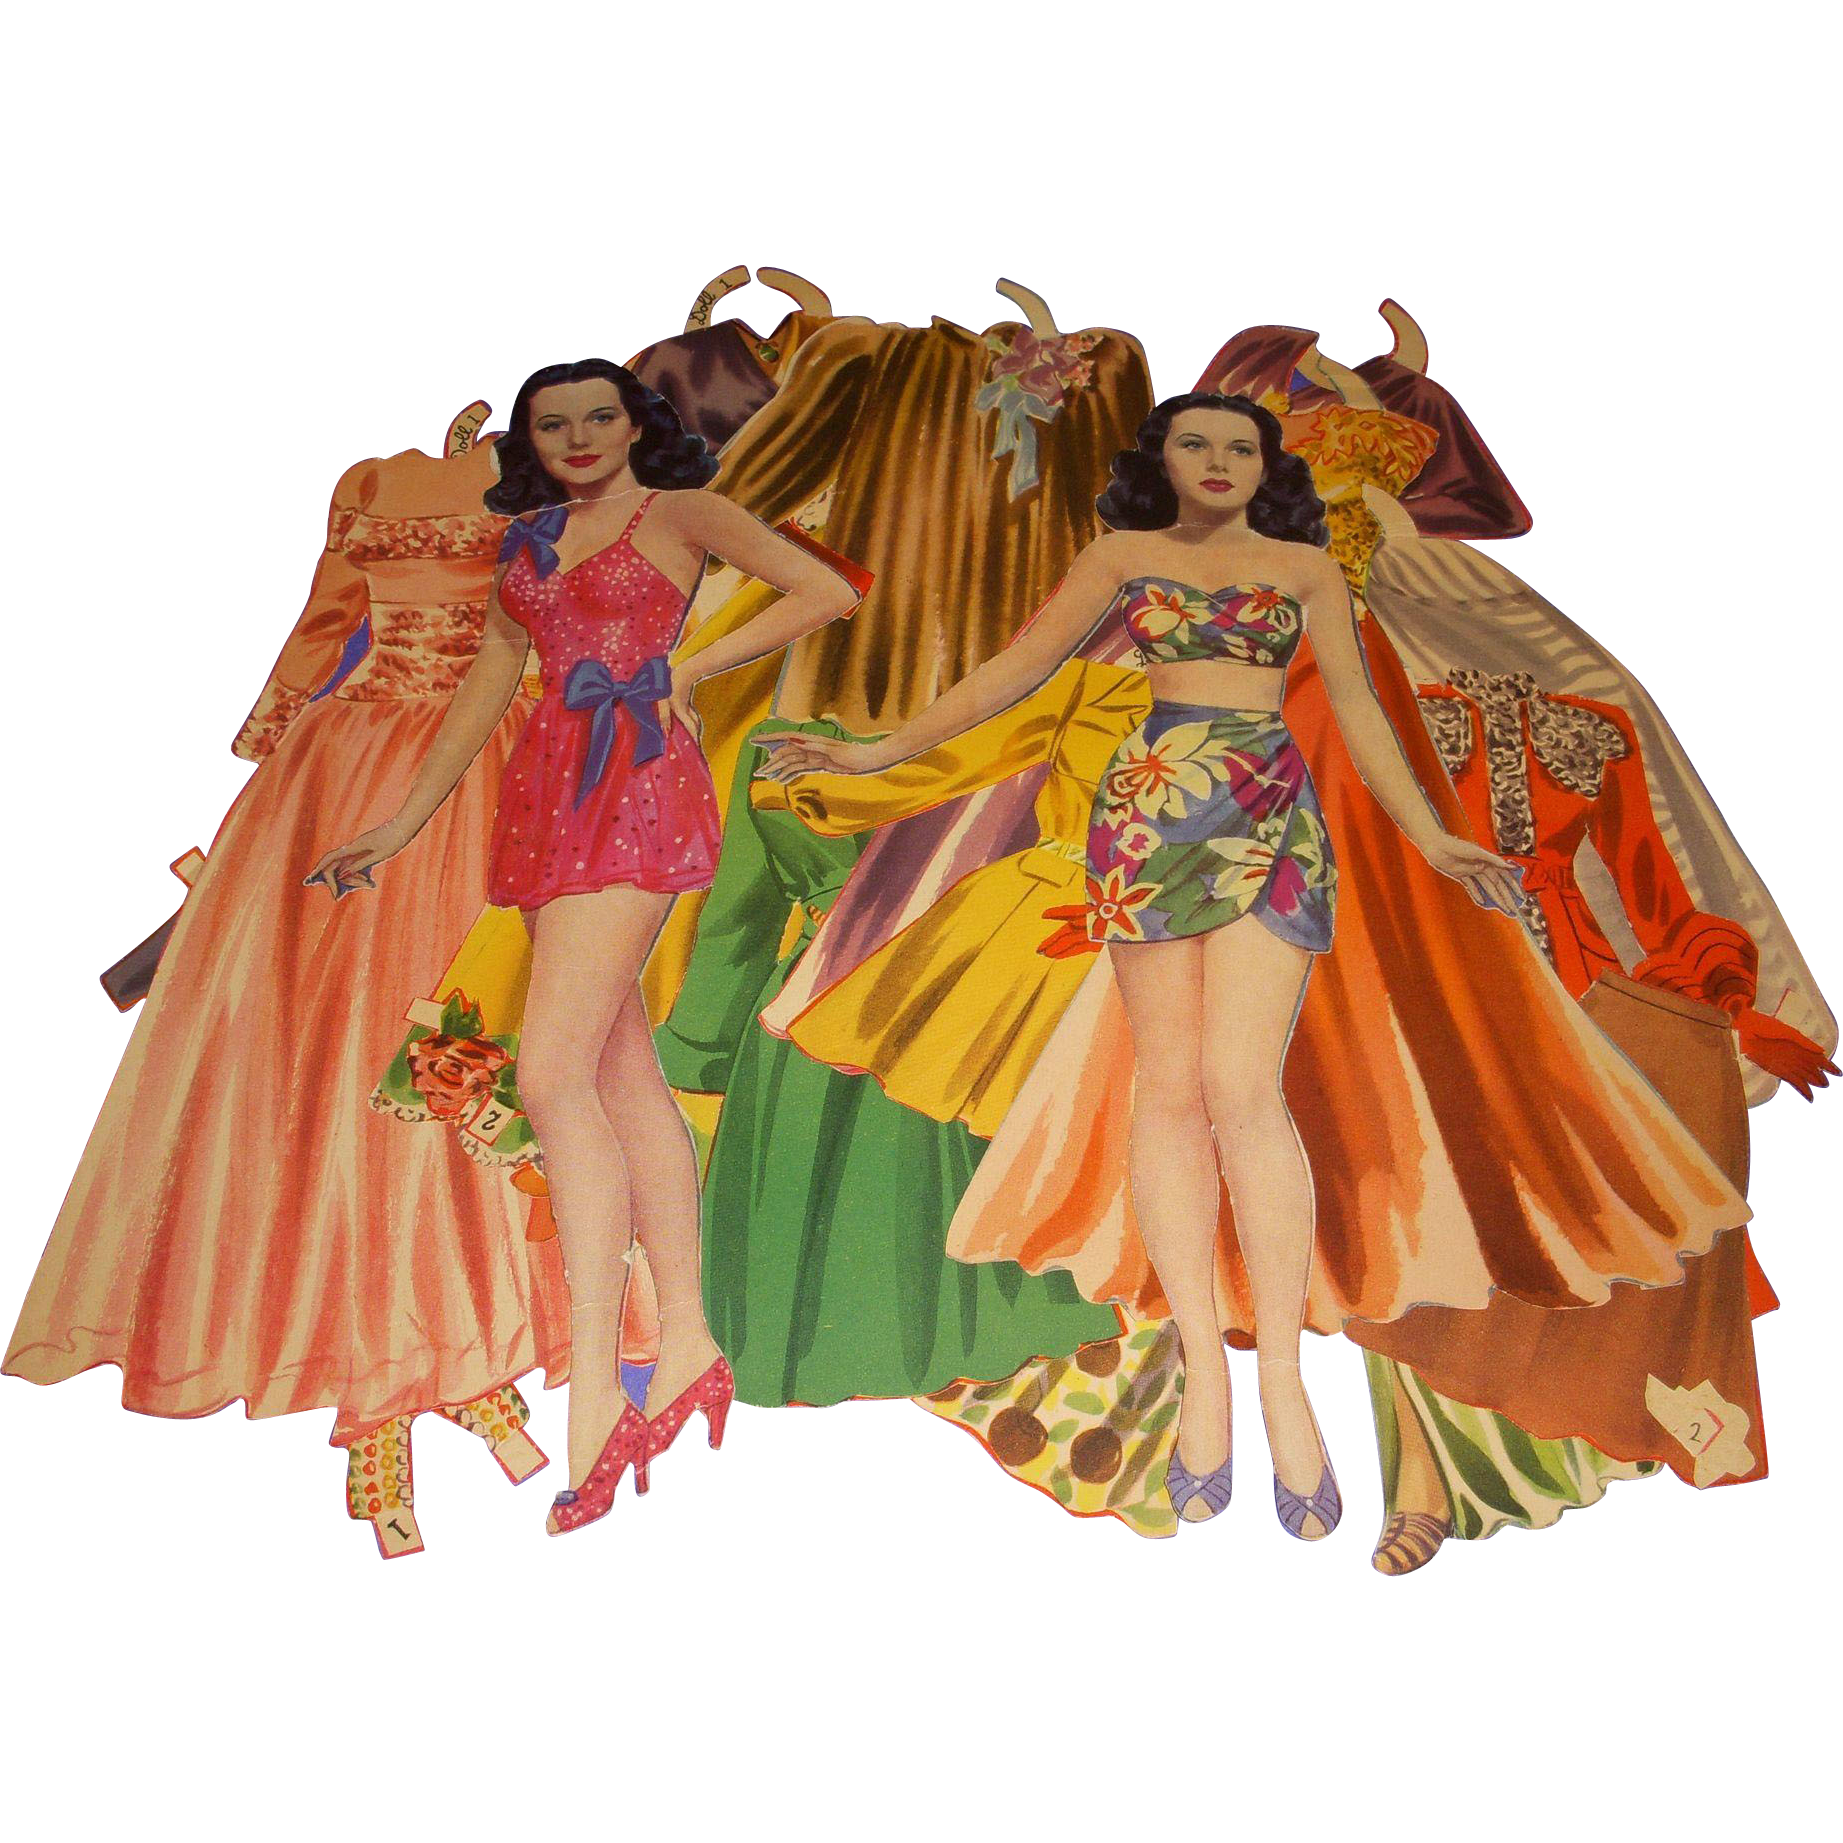 paper dolls movie Free printable paper dolls with their clothes all little girls love playing with paper dolls download paper dolls and clothes files for the little girls in your life.